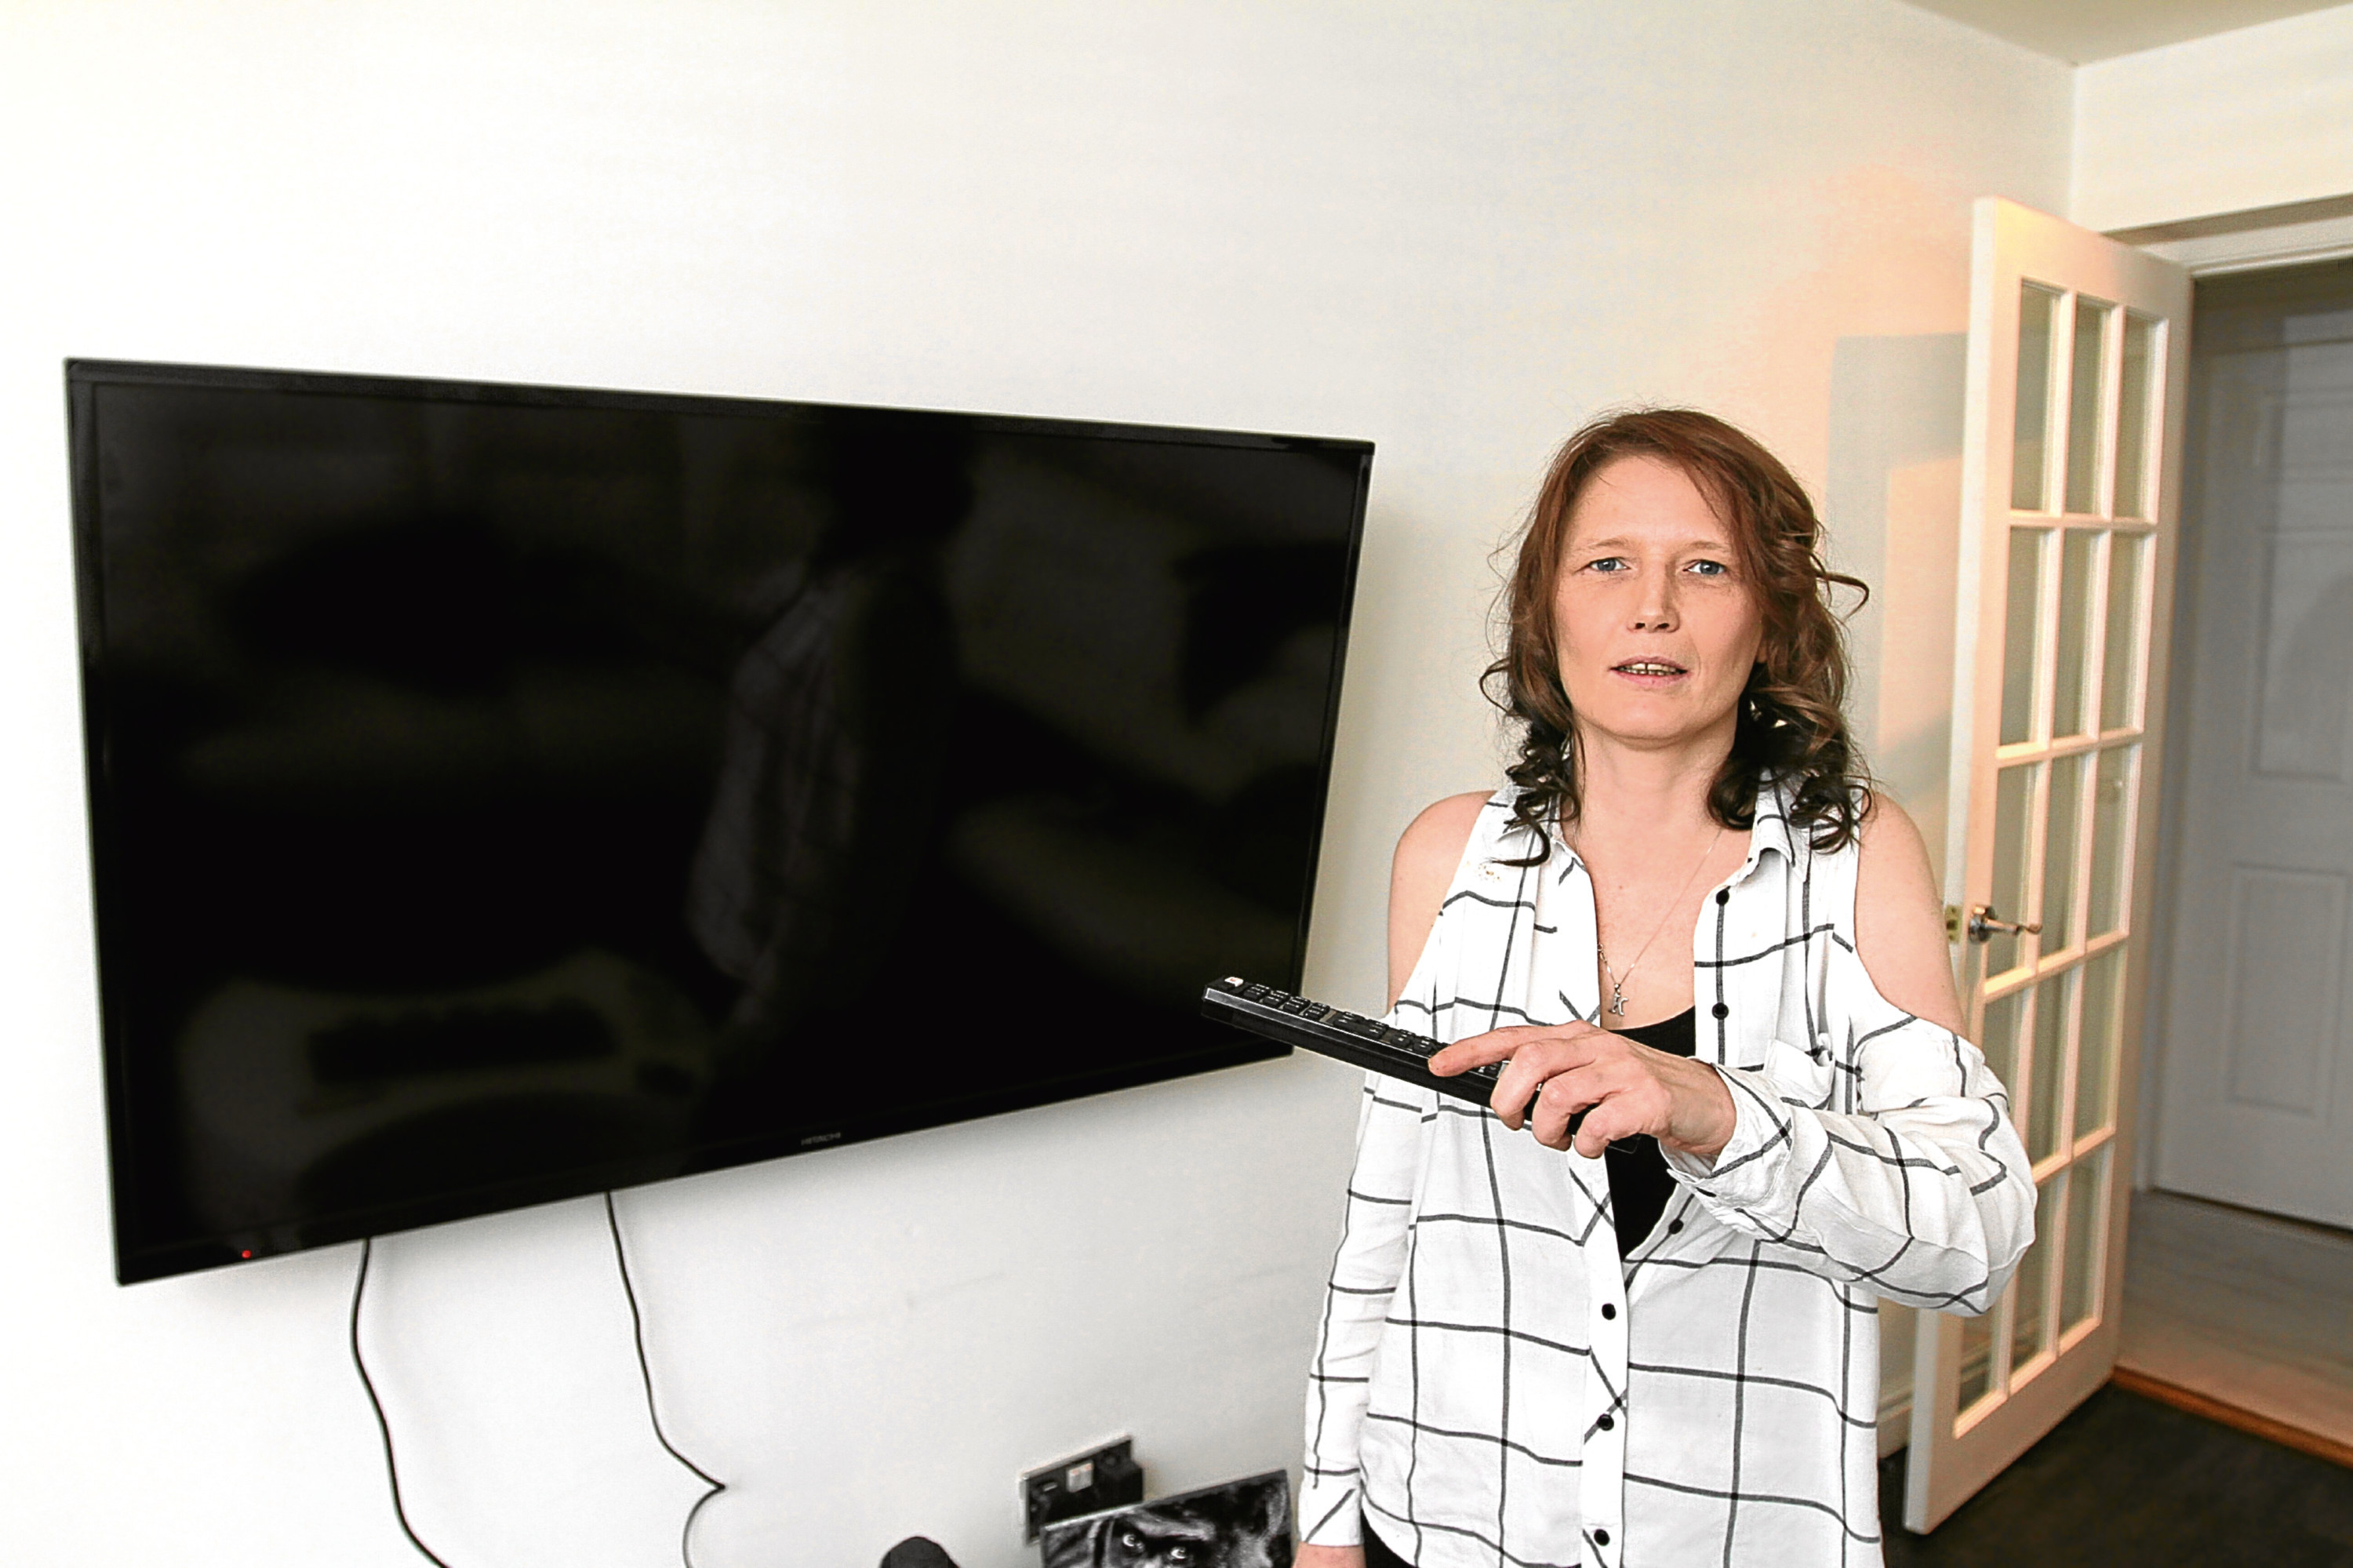 Karen has been involved in a dispute with Argos who, she says, have sold her four faulty TVs.